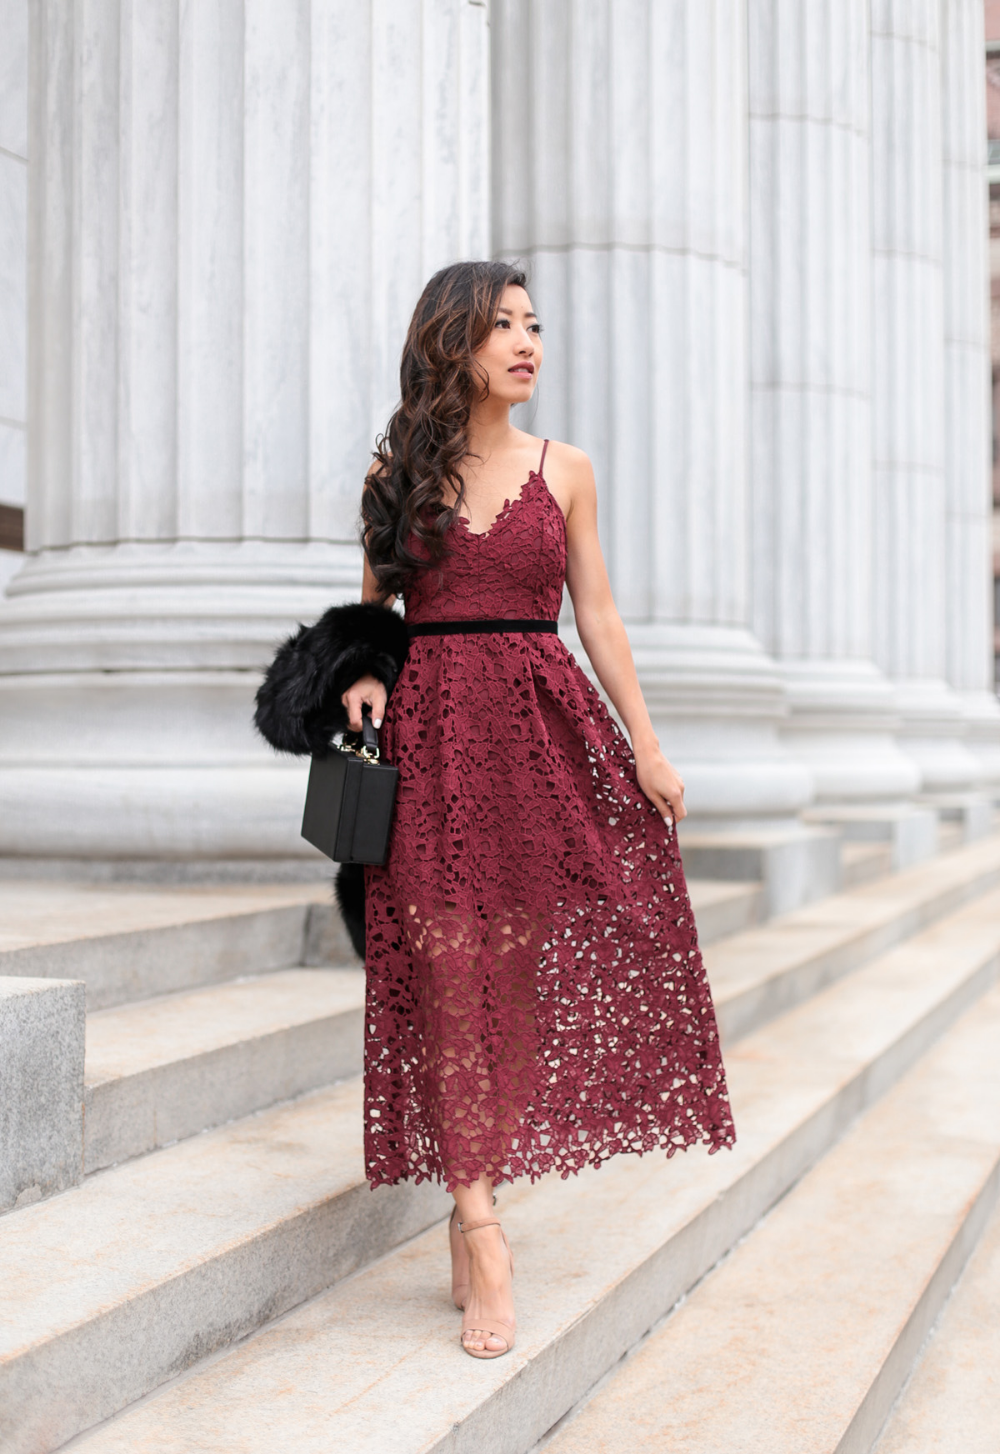 Holiday Lace Dress Faux Fur Scarf Holiday Lace Dress Wedding Guest Dress Dresses [ 1454 x 1000 Pixel ]